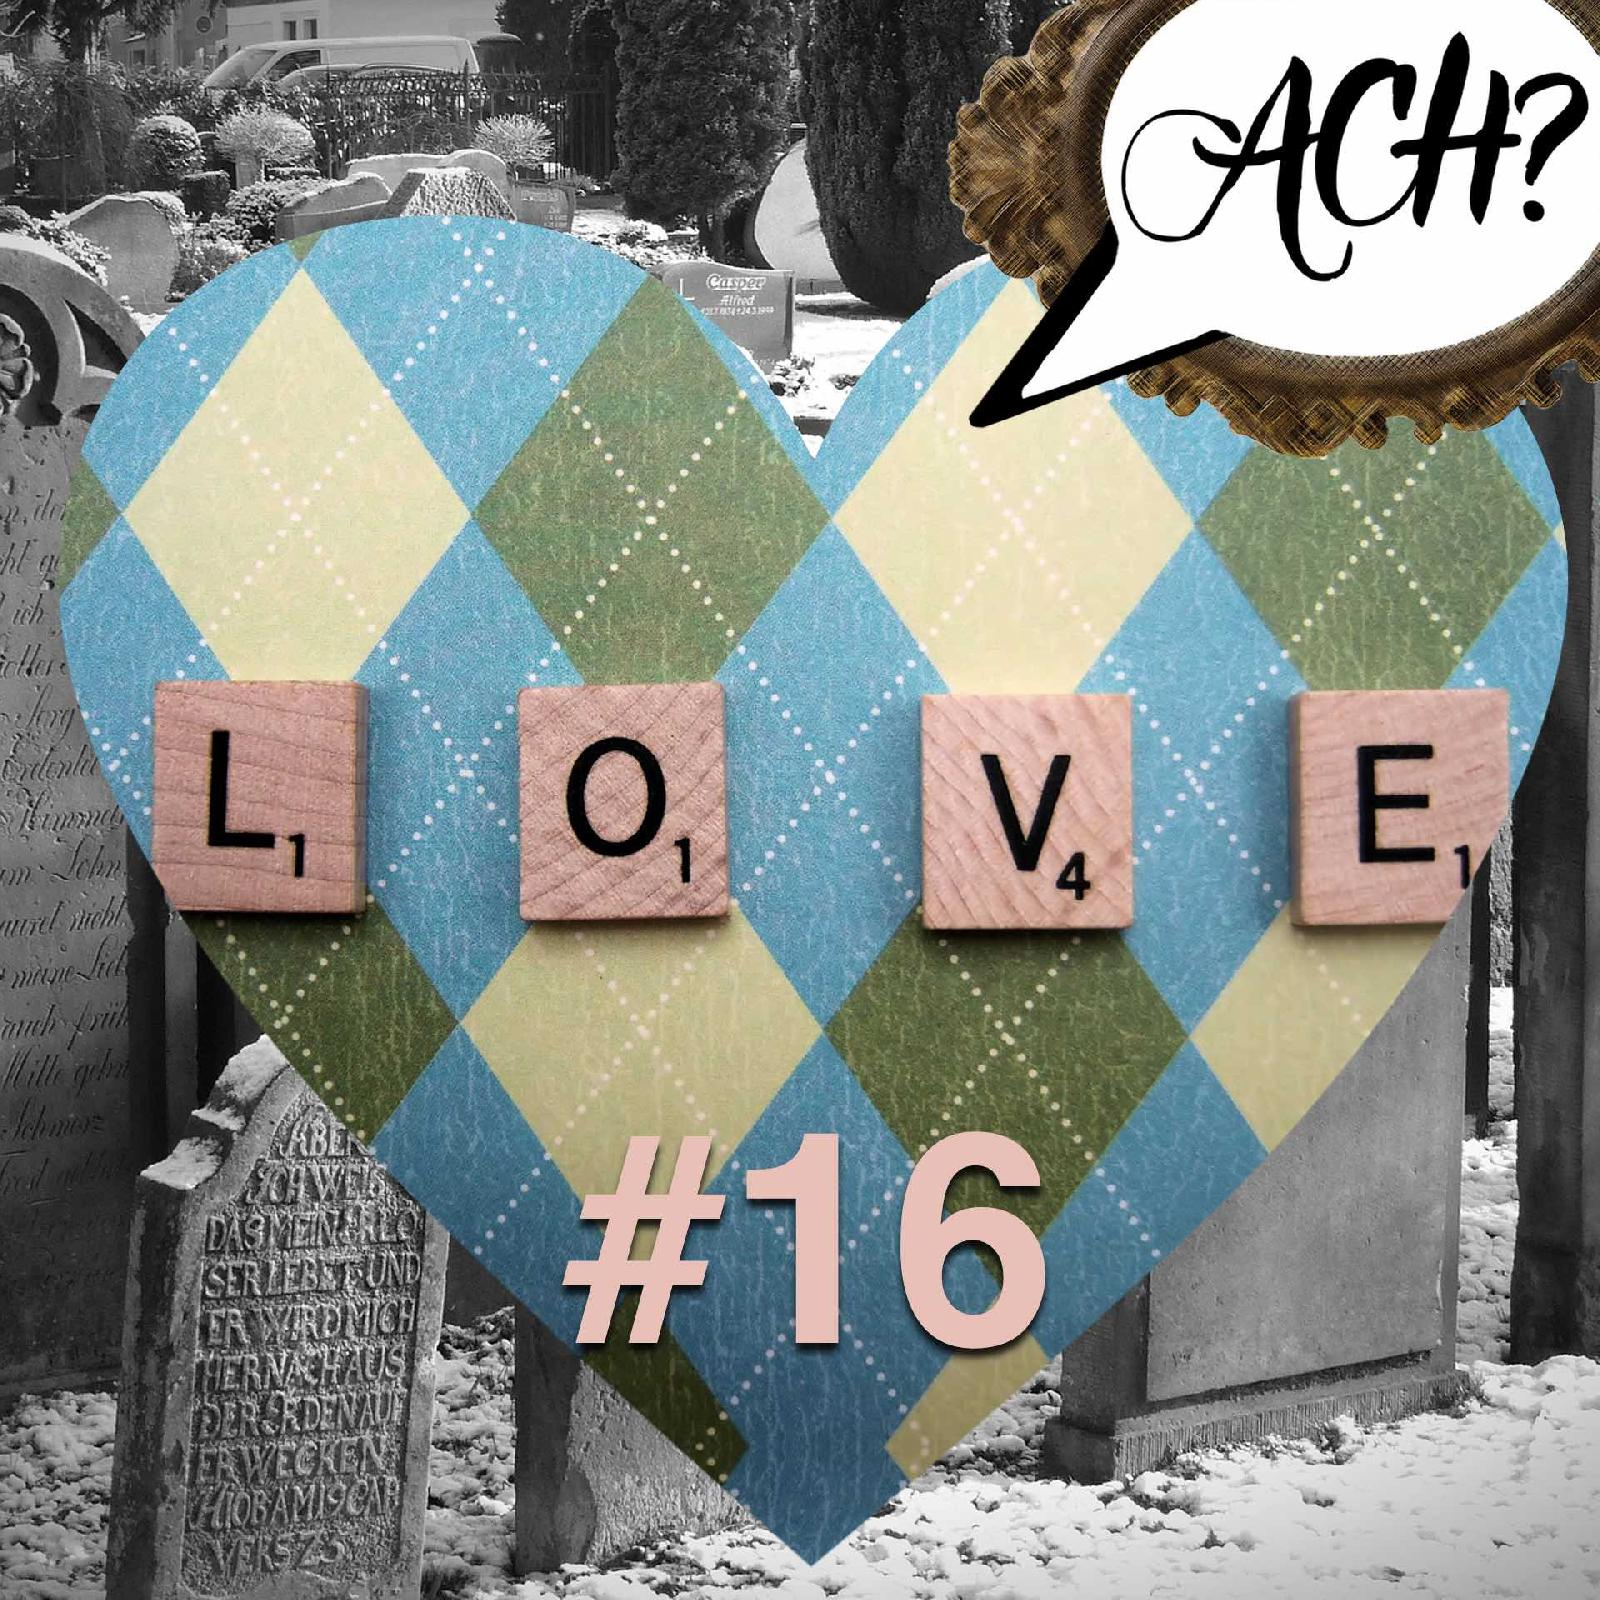 Ach-Podcast: 16 – The Greatest Love Story of All oder: Dominiks schweres Carl-Tänzler-Trauma